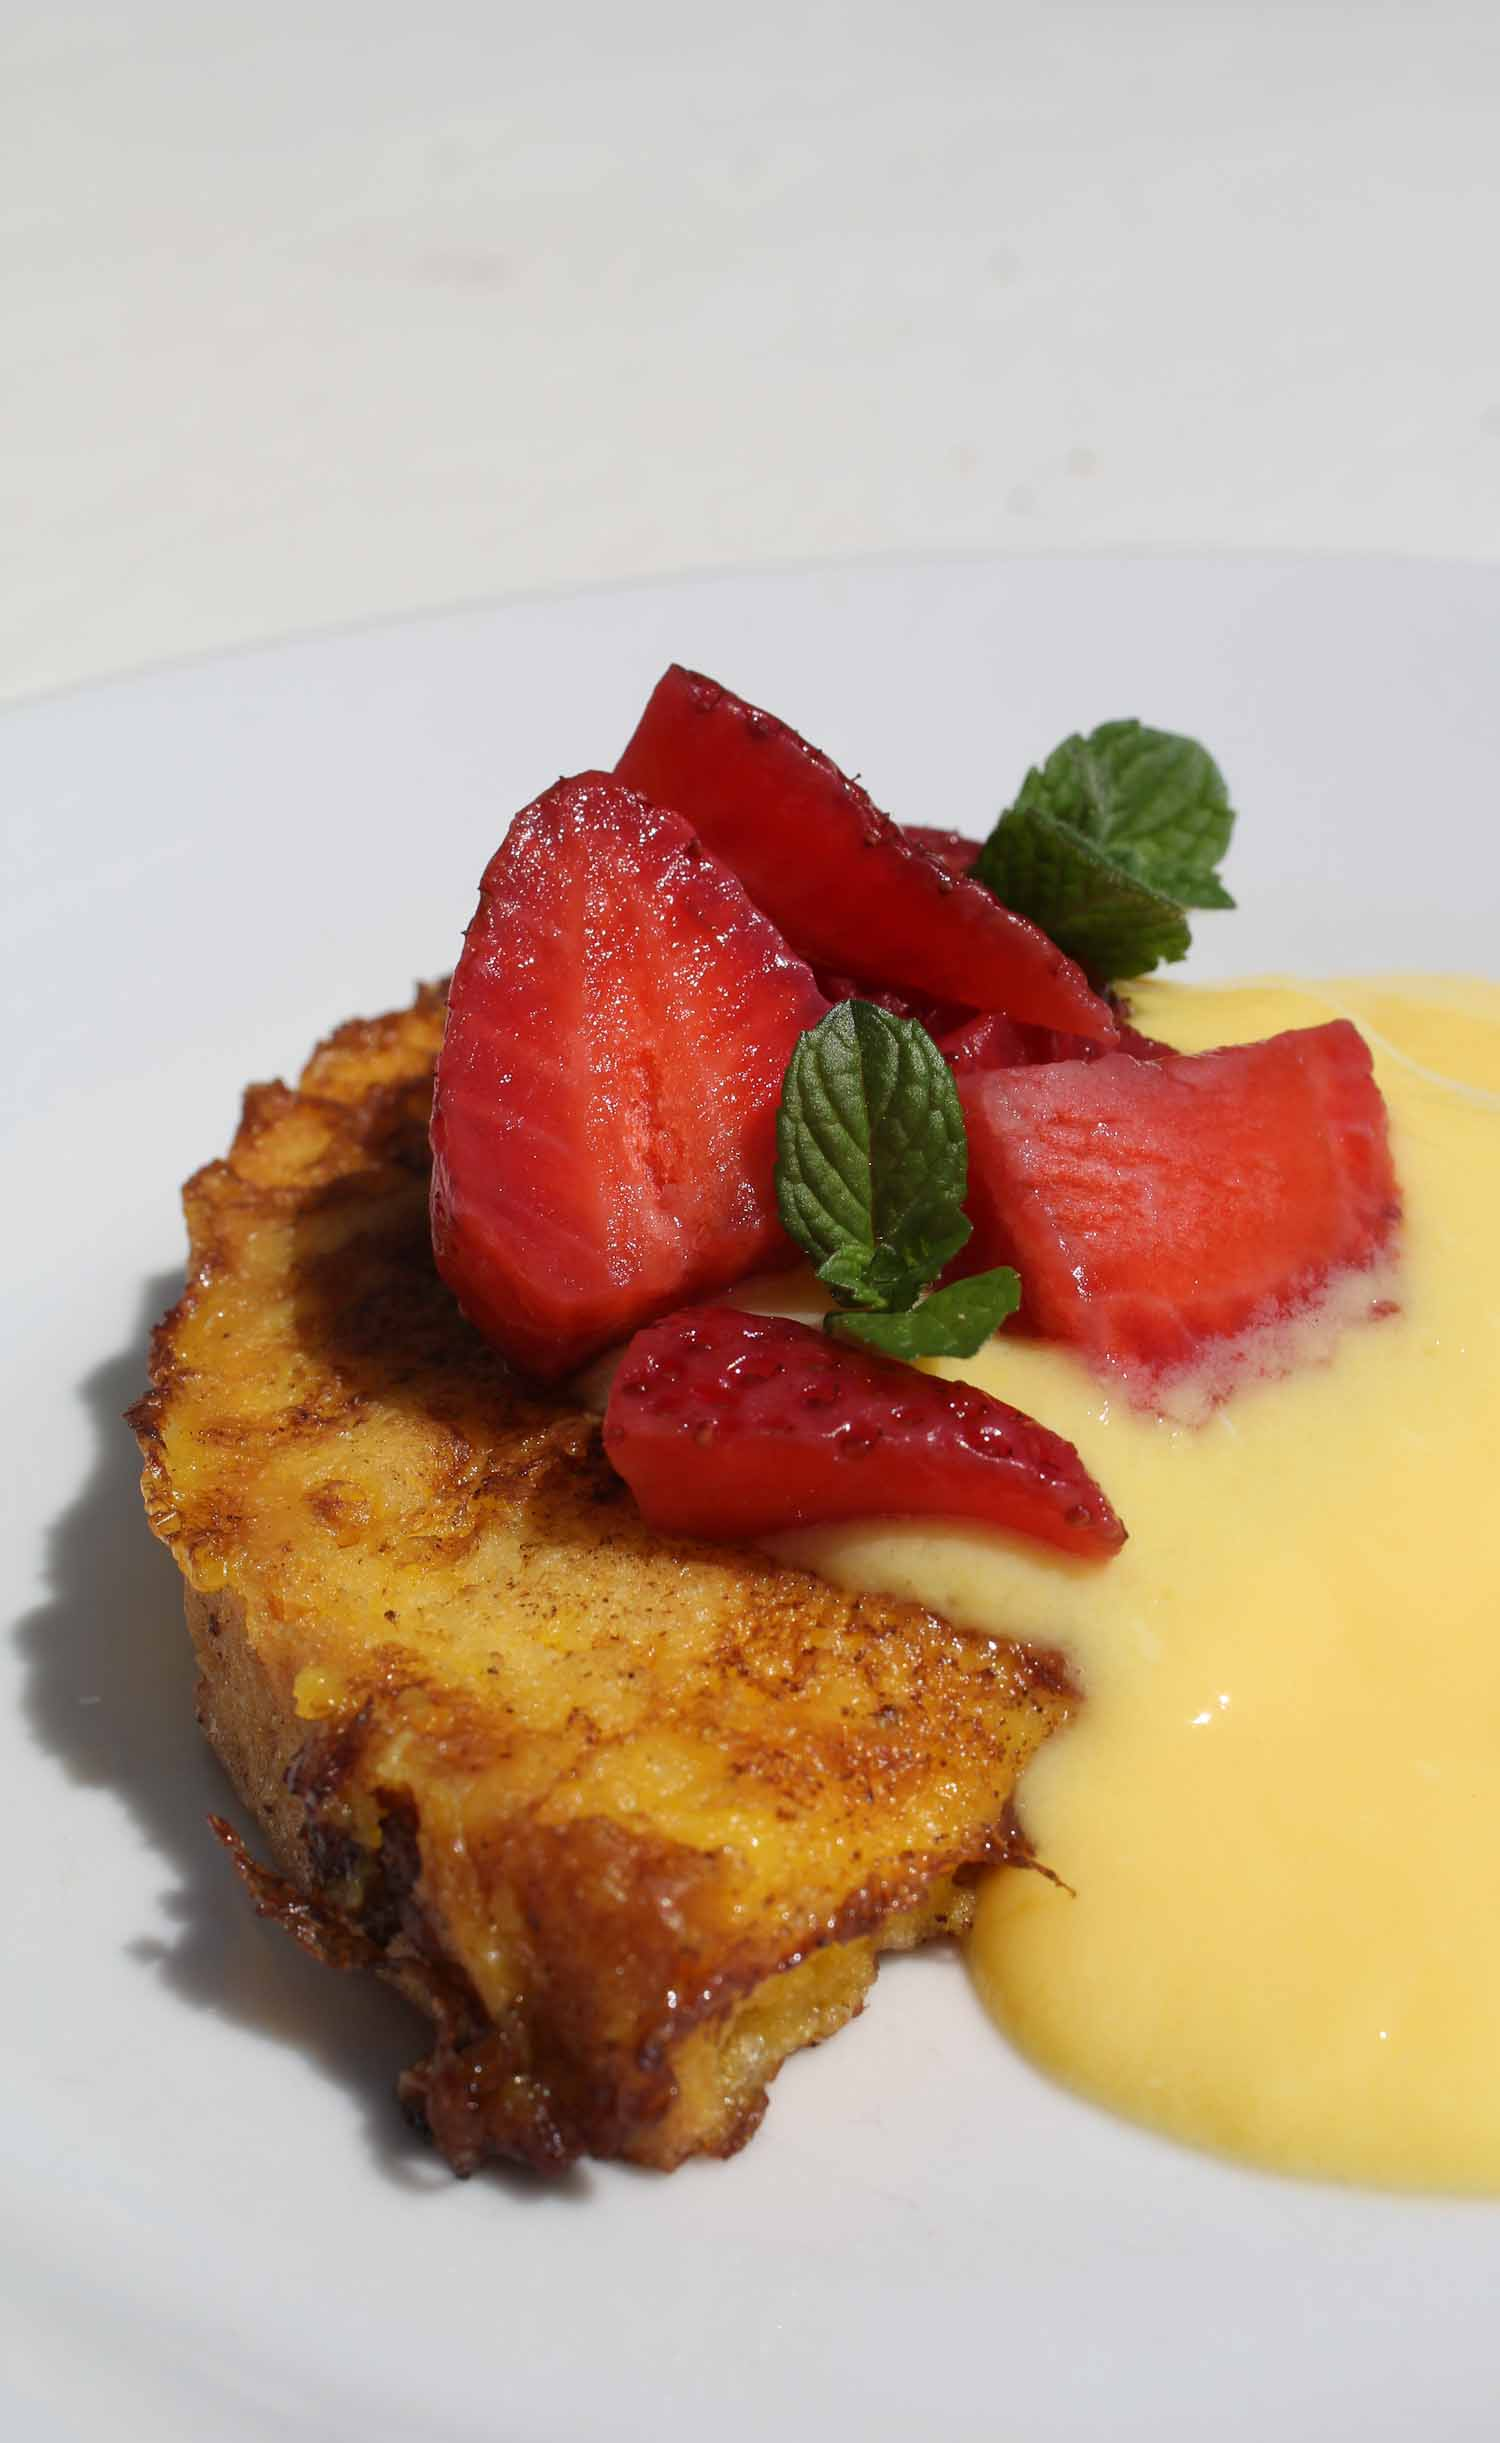 French toast with creme anglaise and strawberries